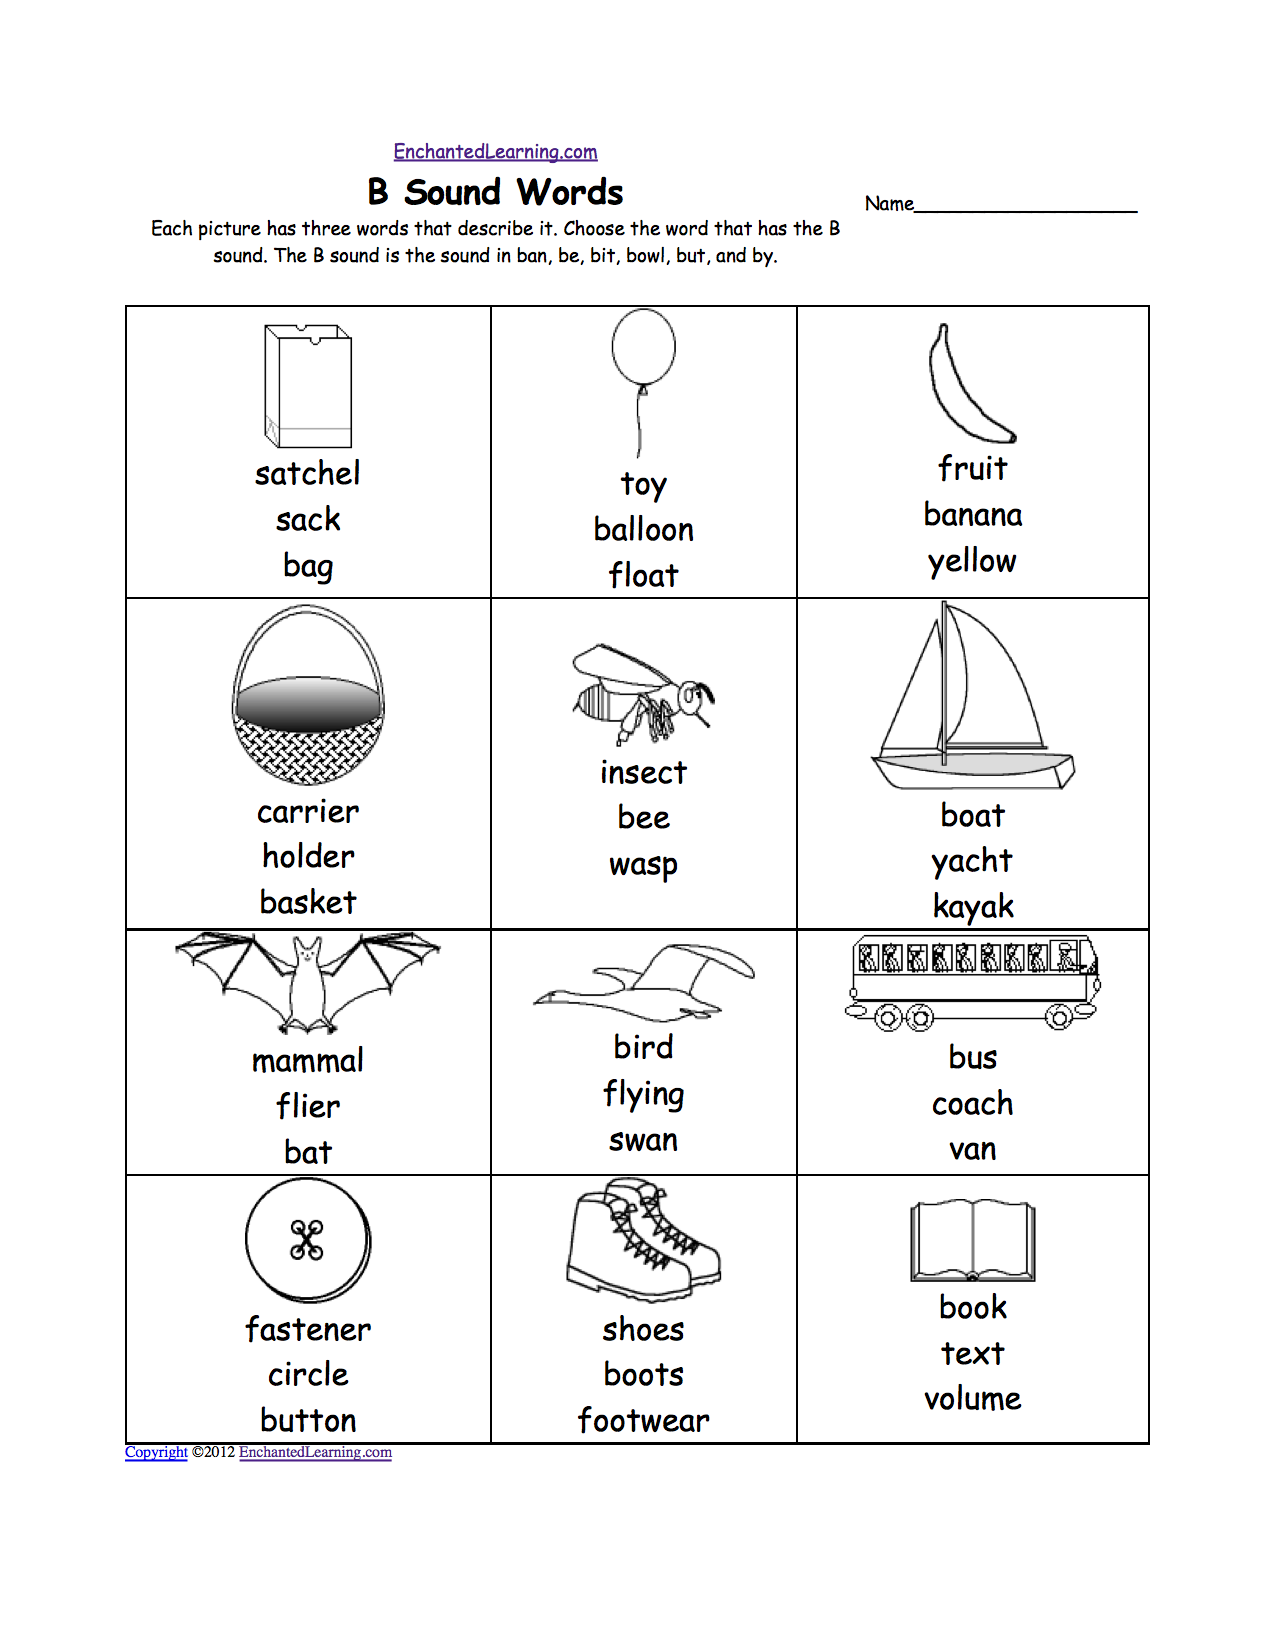 Aldiablosus  Inspiring Phonics Worksheets Multiple Choice Worksheets To Print  With Licious Quotbquot Sound Phonics Worksheet Multiple Choice Each Picture Has Three Words That Describe It Choose The Word That Has A Quotbquot Sound The Quotbquot Sound Is The Sound  With Agreeable Claim Evidence Reasoning Worksheets Also Basic Algebra Worksheets In Addition Diffusion Worksheet Answers And Punnett Square Practice Worksheet As Well As Adding And Subtracting Fractions With Unlike Denominators Worksheets Additionally Solving Quadratic Equations Worksheet From Enchantedlearningcom With Aldiablosus  Licious Phonics Worksheets Multiple Choice Worksheets To Print  With Agreeable Quotbquot Sound Phonics Worksheet Multiple Choice Each Picture Has Three Words That Describe It Choose The Word That Has A Quotbquot Sound The Quotbquot Sound Is The Sound  And Inspiring Claim Evidence Reasoning Worksheets Also Basic Algebra Worksheets In Addition Diffusion Worksheet Answers From Enchantedlearningcom